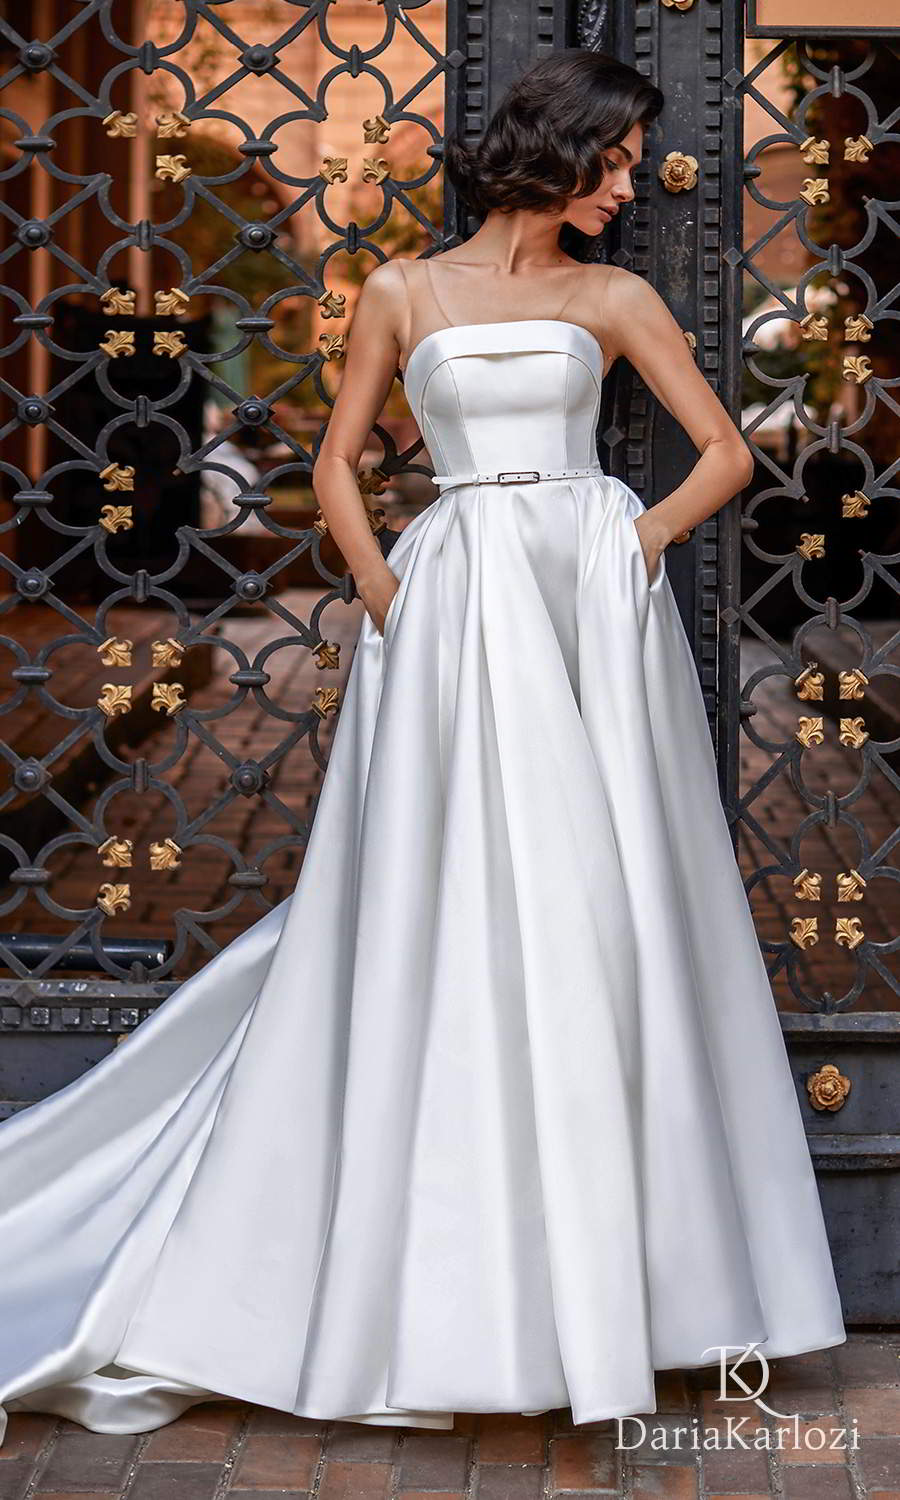 daria karlozi 2021 graceful dream bridal sleeveless illusion straight across neckline clean minimalist a line ball gown wedding dress cathedral train (light breeze) mv